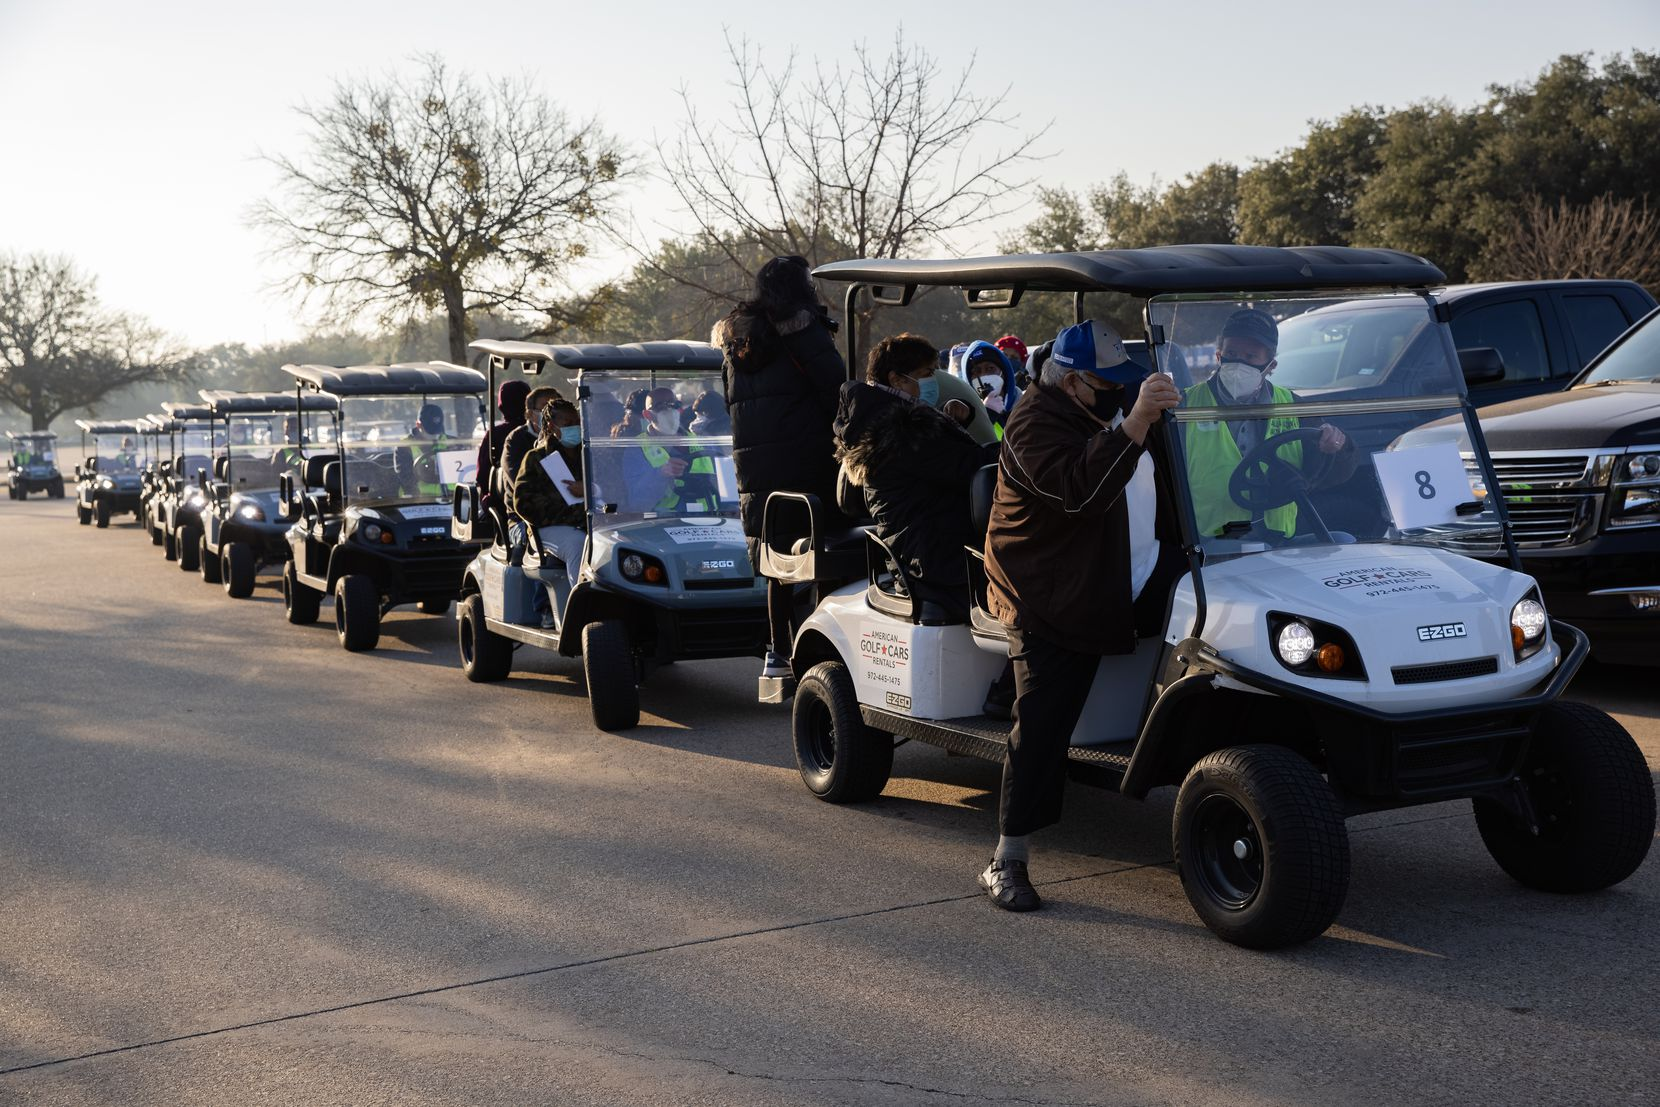 Golf carts were used in Fair Park to transport people receiving the COID-19 vaccine in late January 2021 in Dallas.